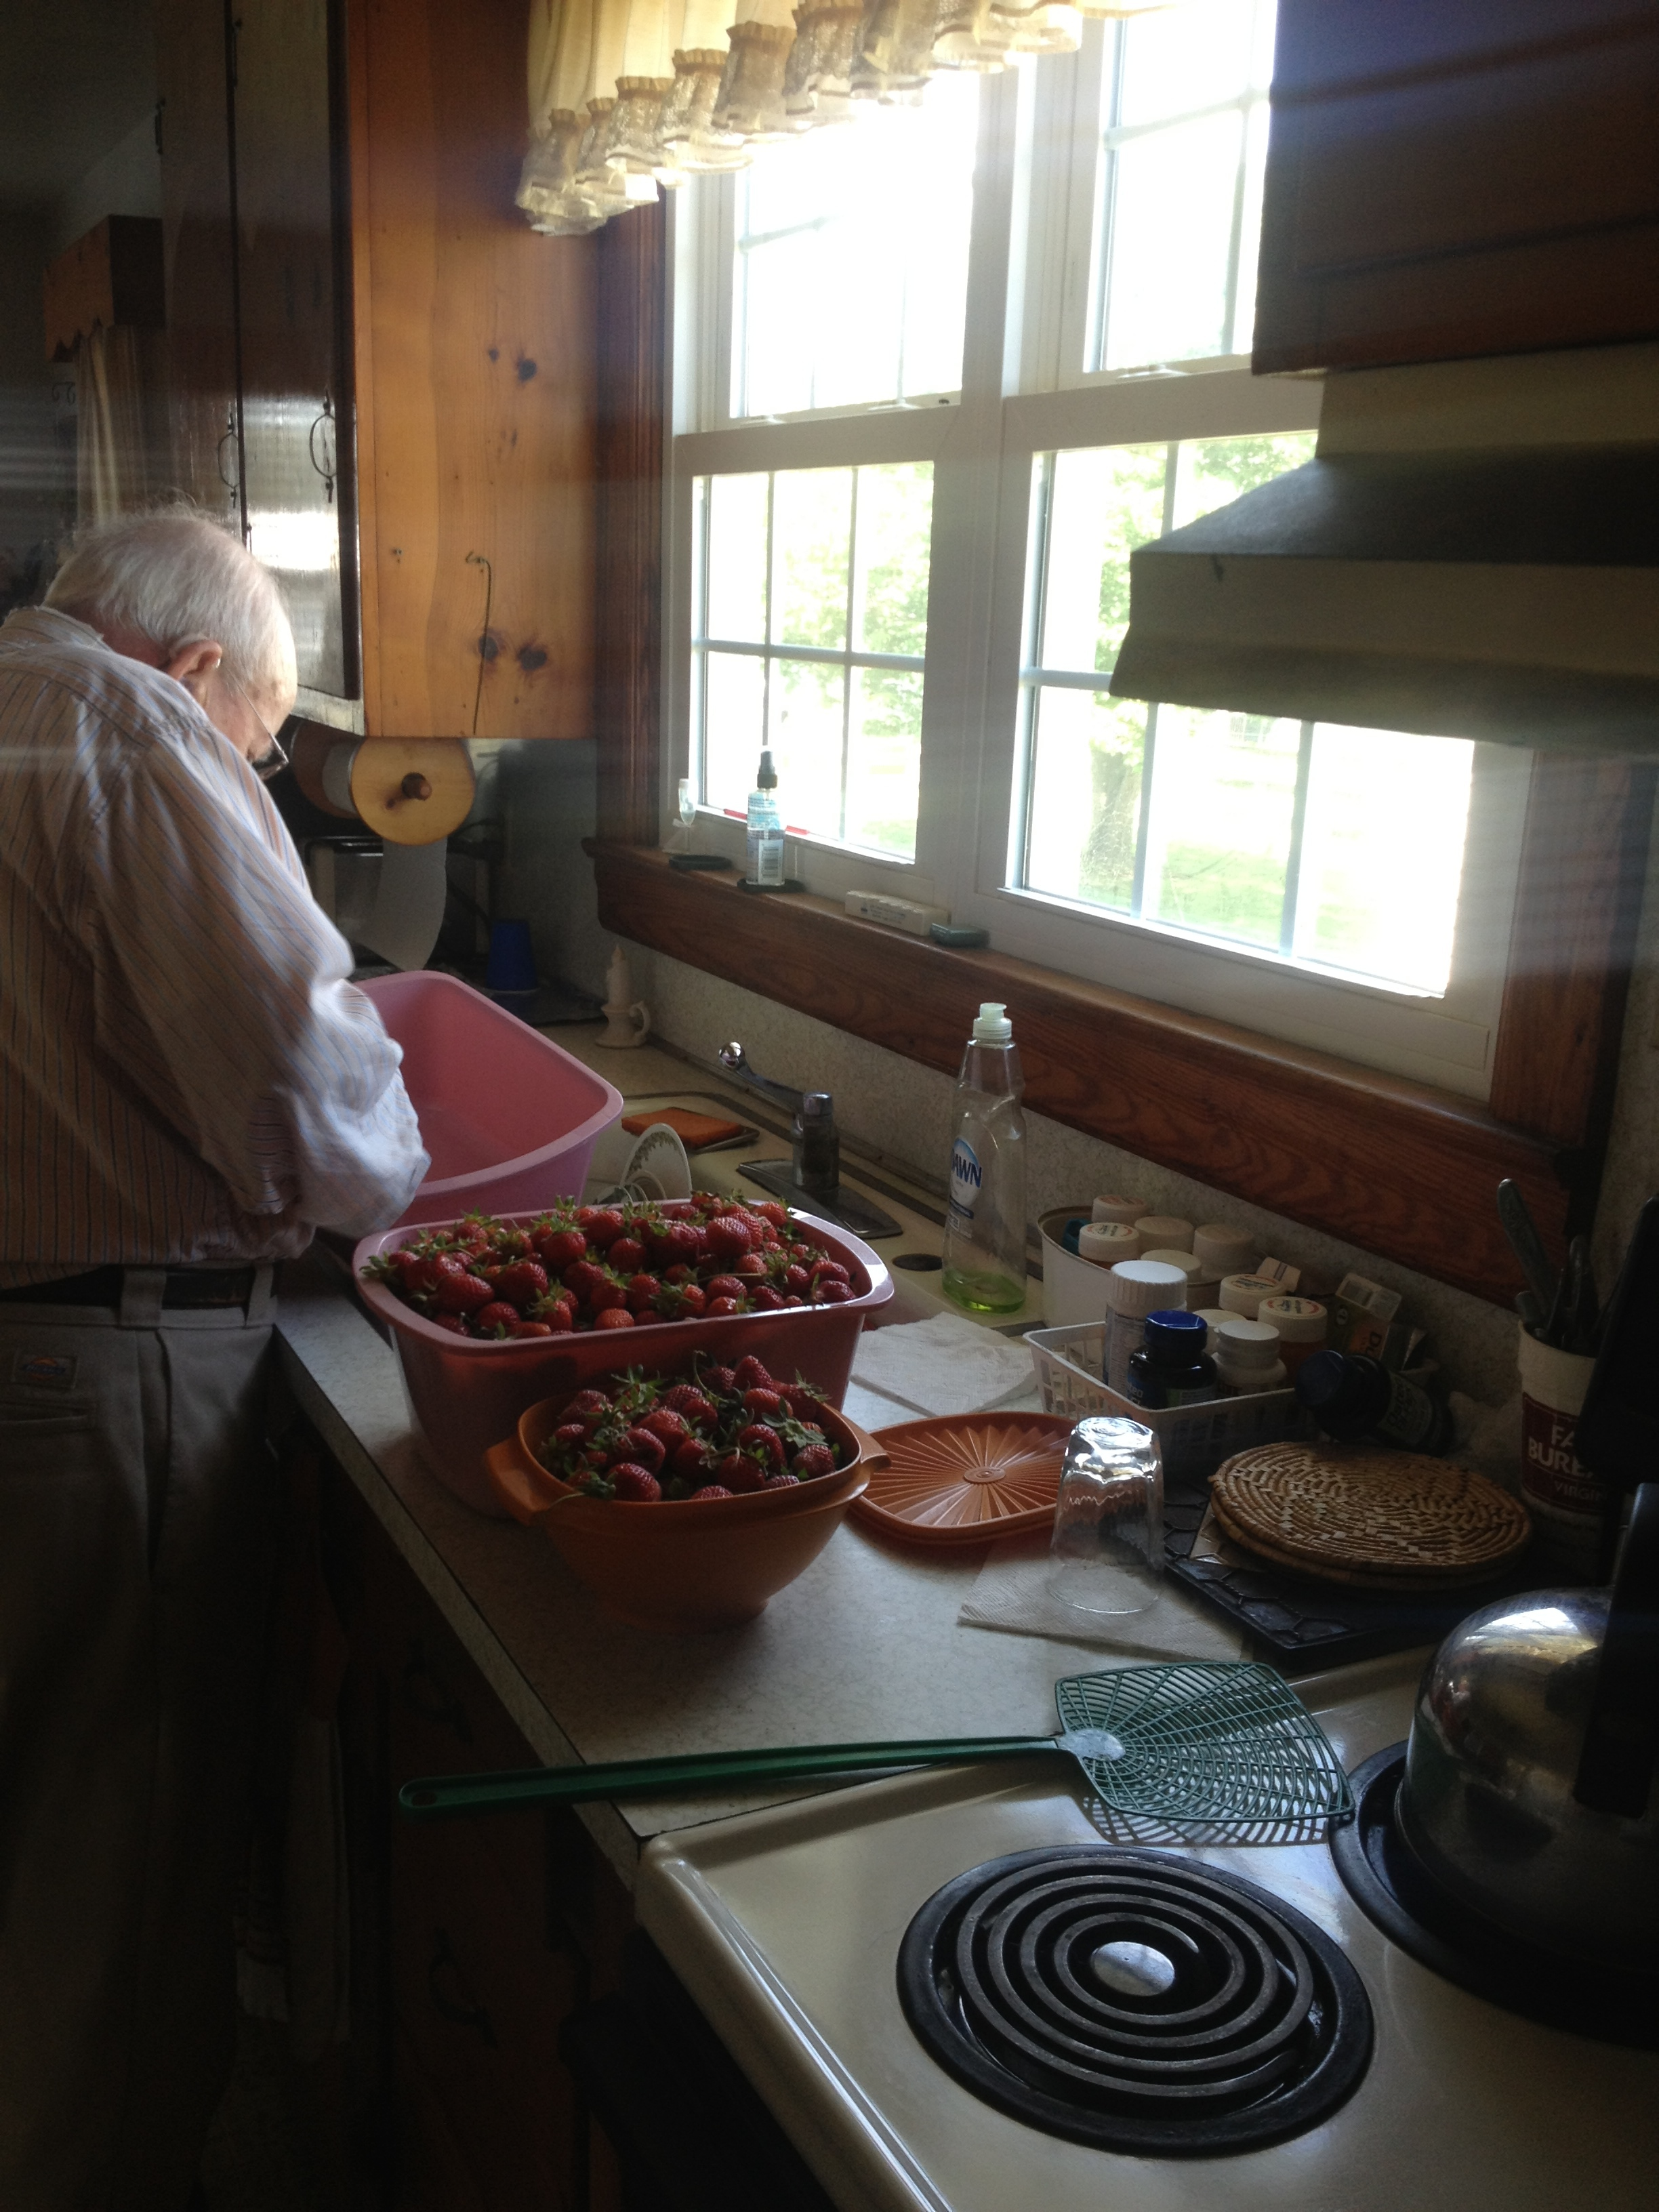 My papa with the retro bowls and strawberries. 2015?